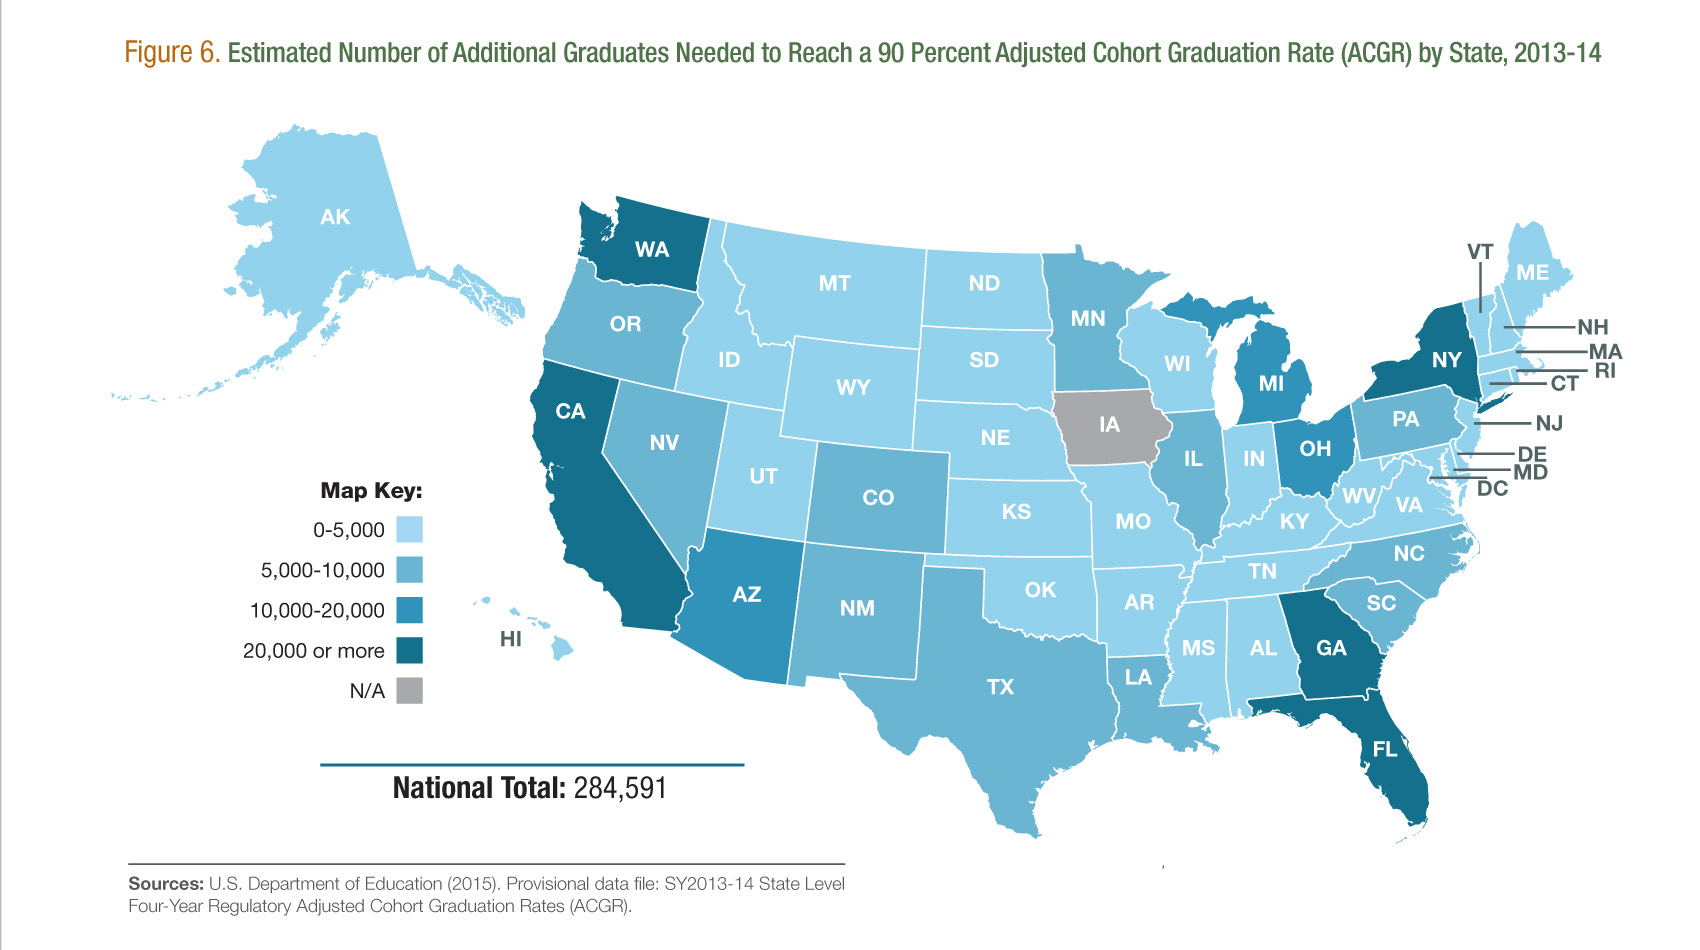 Estimated Number of Additional Graduates Needed to Reach a 90 Percent Graduation Rate (ACGR) by State, 2013-14 [Figure 6]